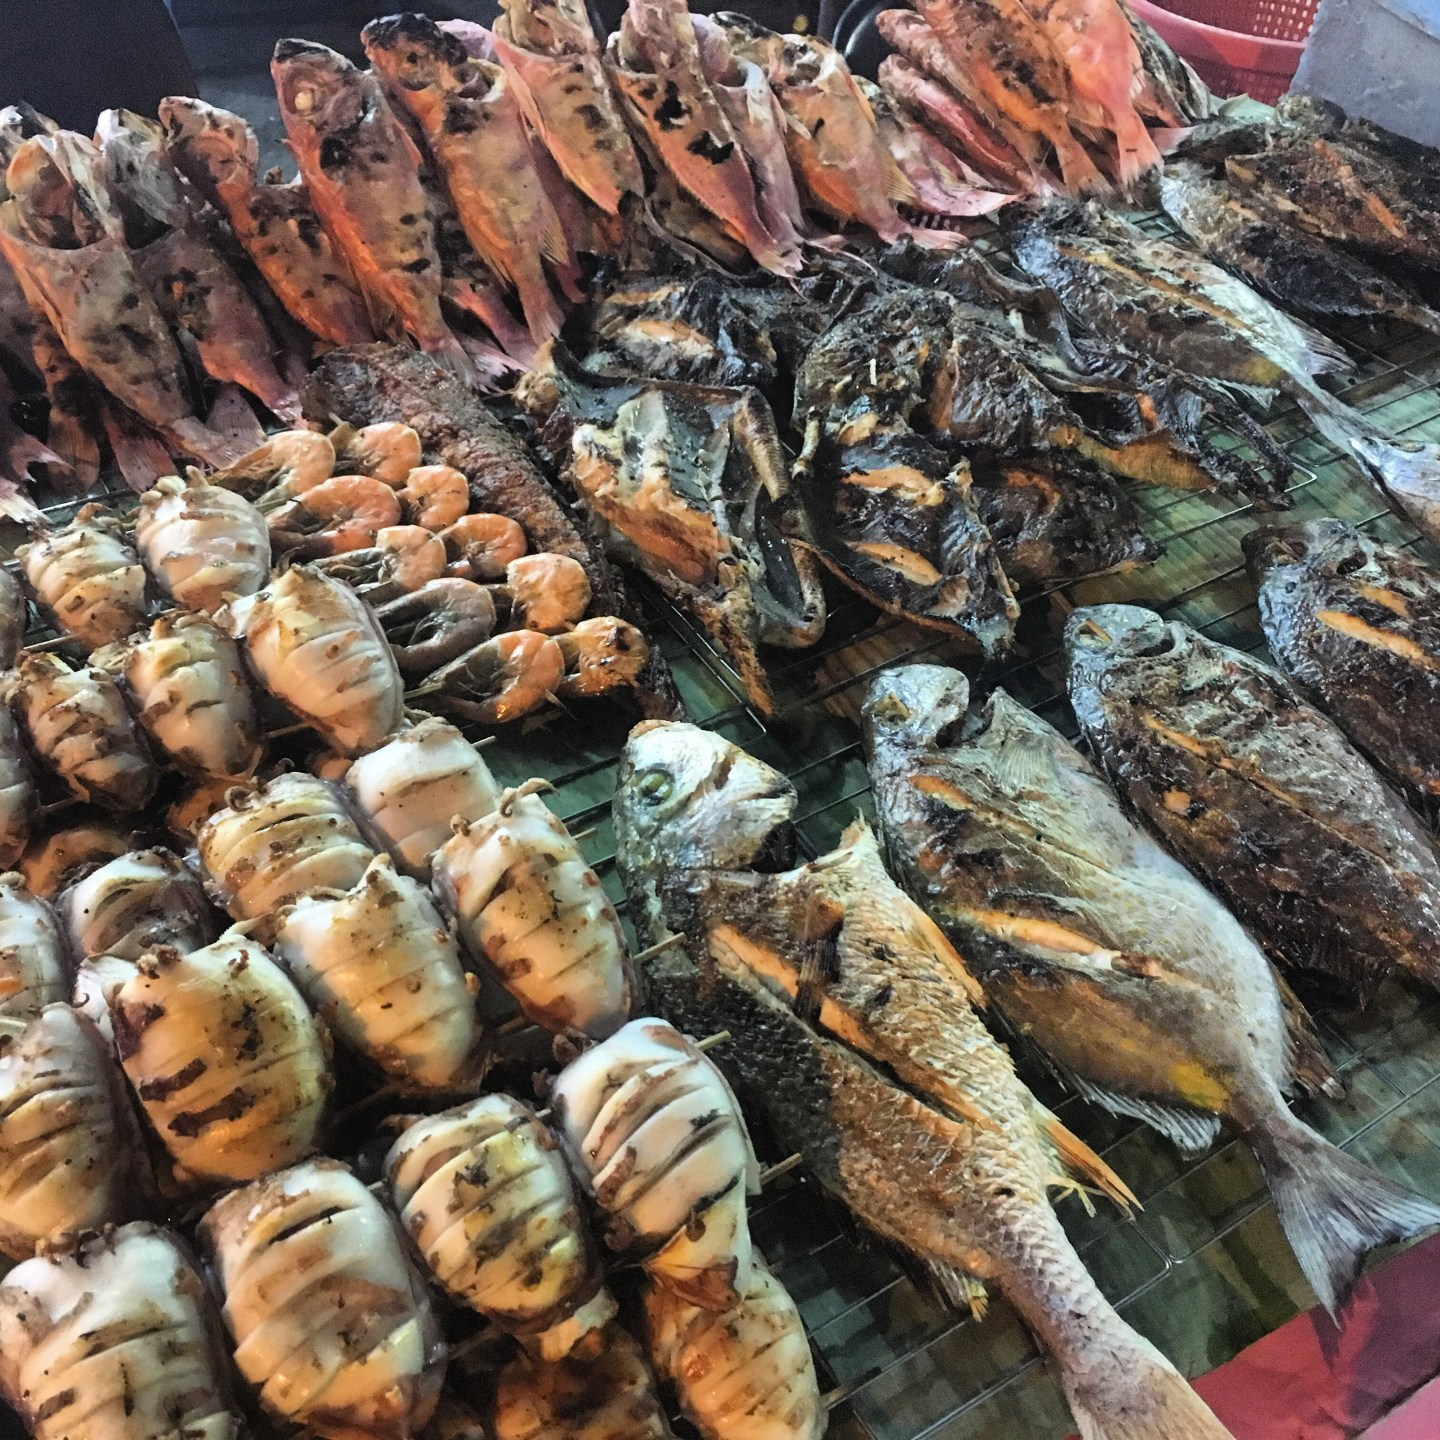 Grilled seafood at Kota Kinabalu night market